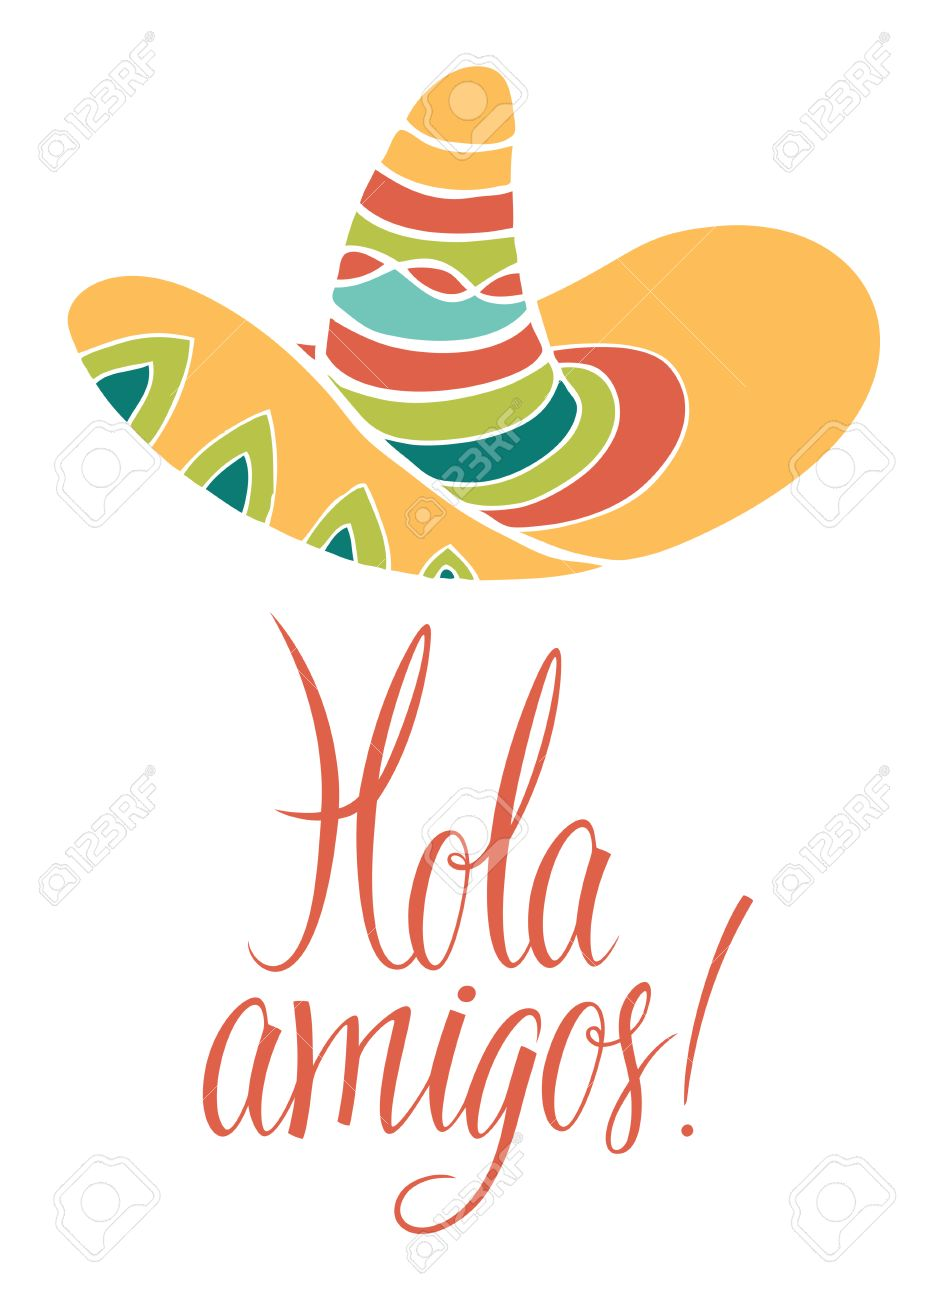 medium resolution of hola amigos design card with calligraphy stock vector 24621560